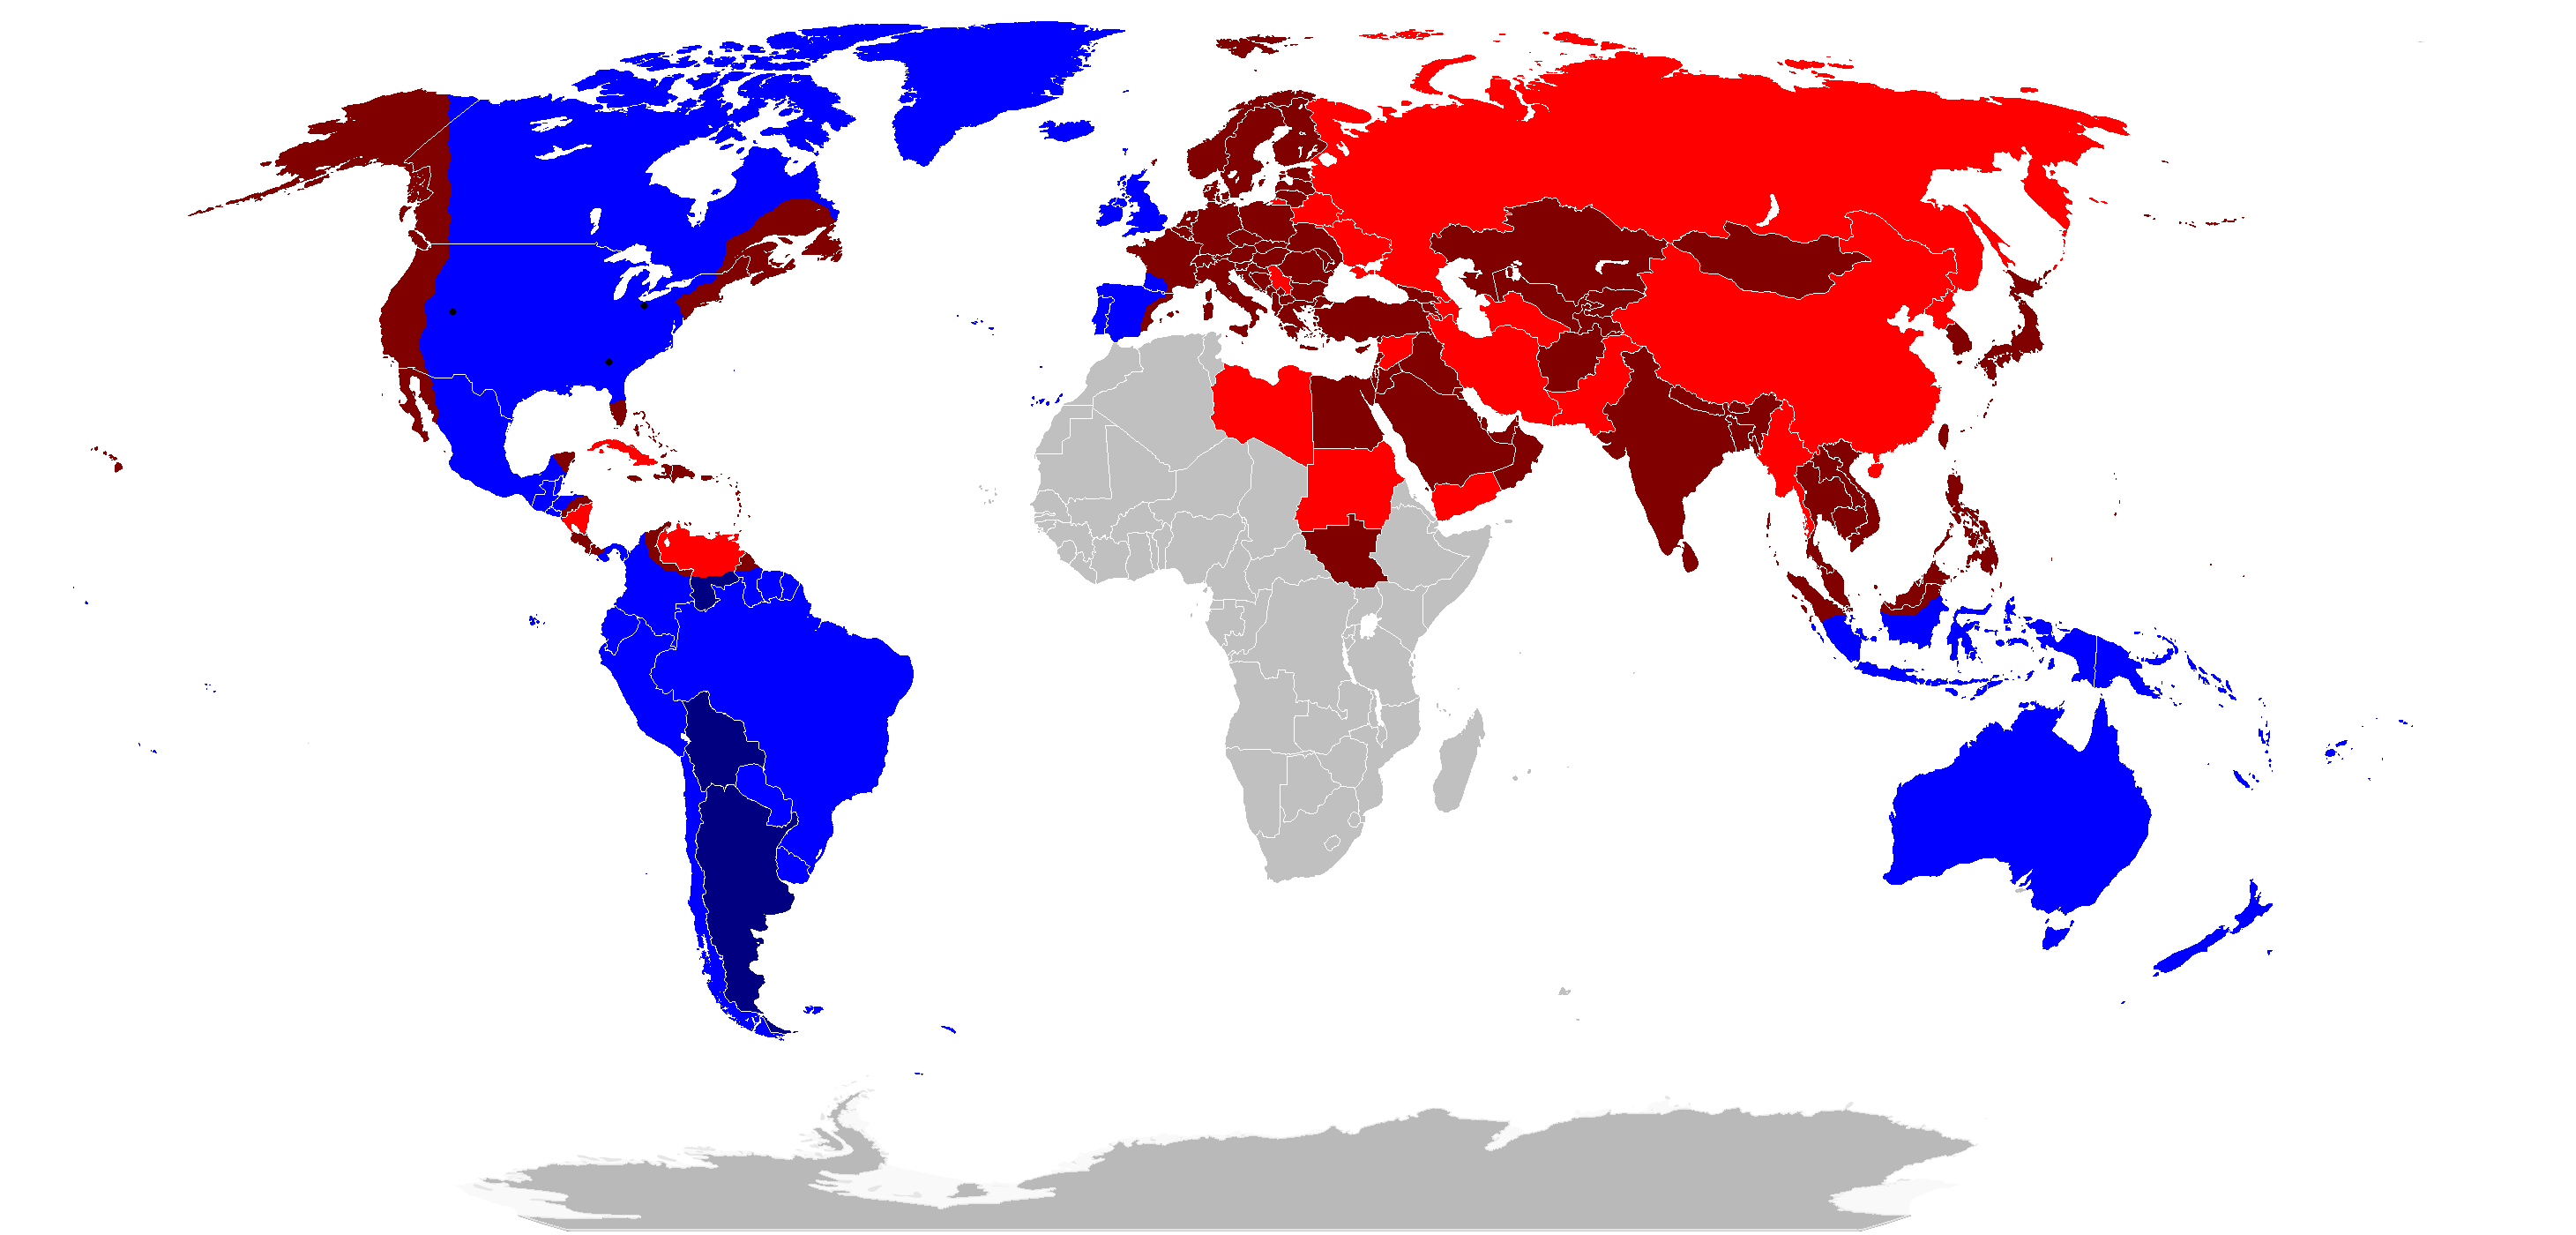 A World In War By Drivanmoffitt On DeviantArt - Map of us allies and enemies